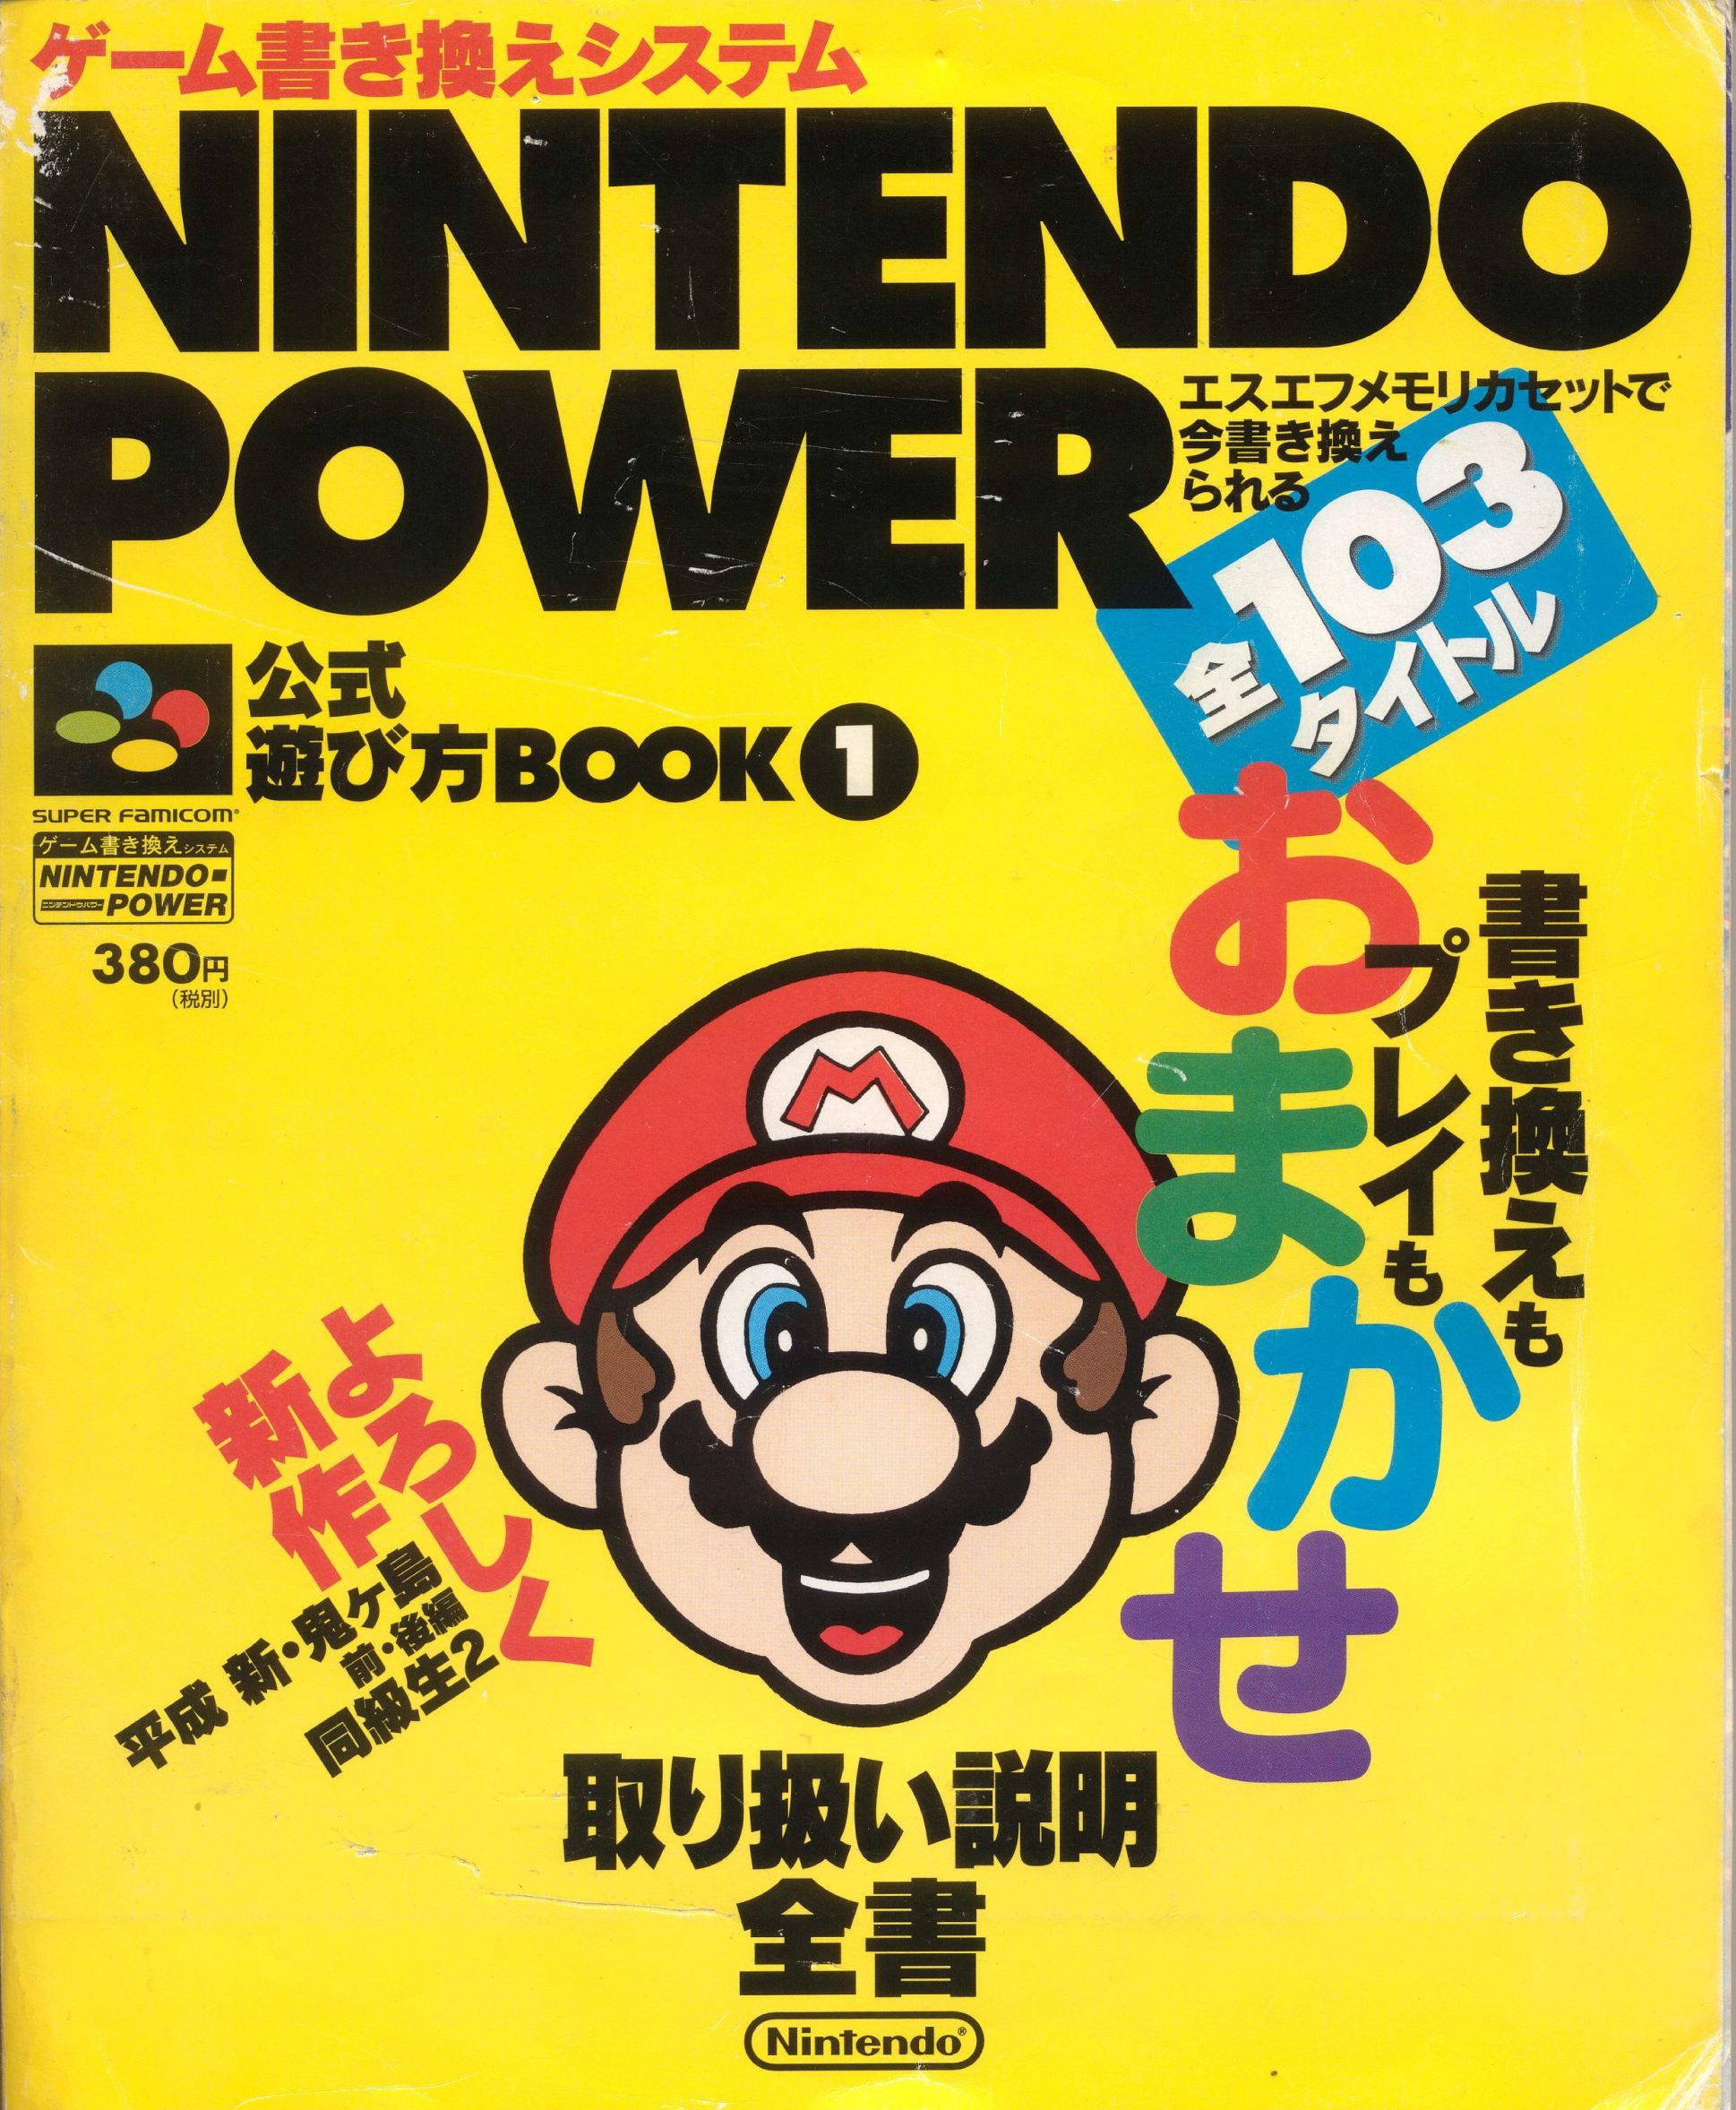 Nintendo Power Cartridge Manual Scanning Project Complete